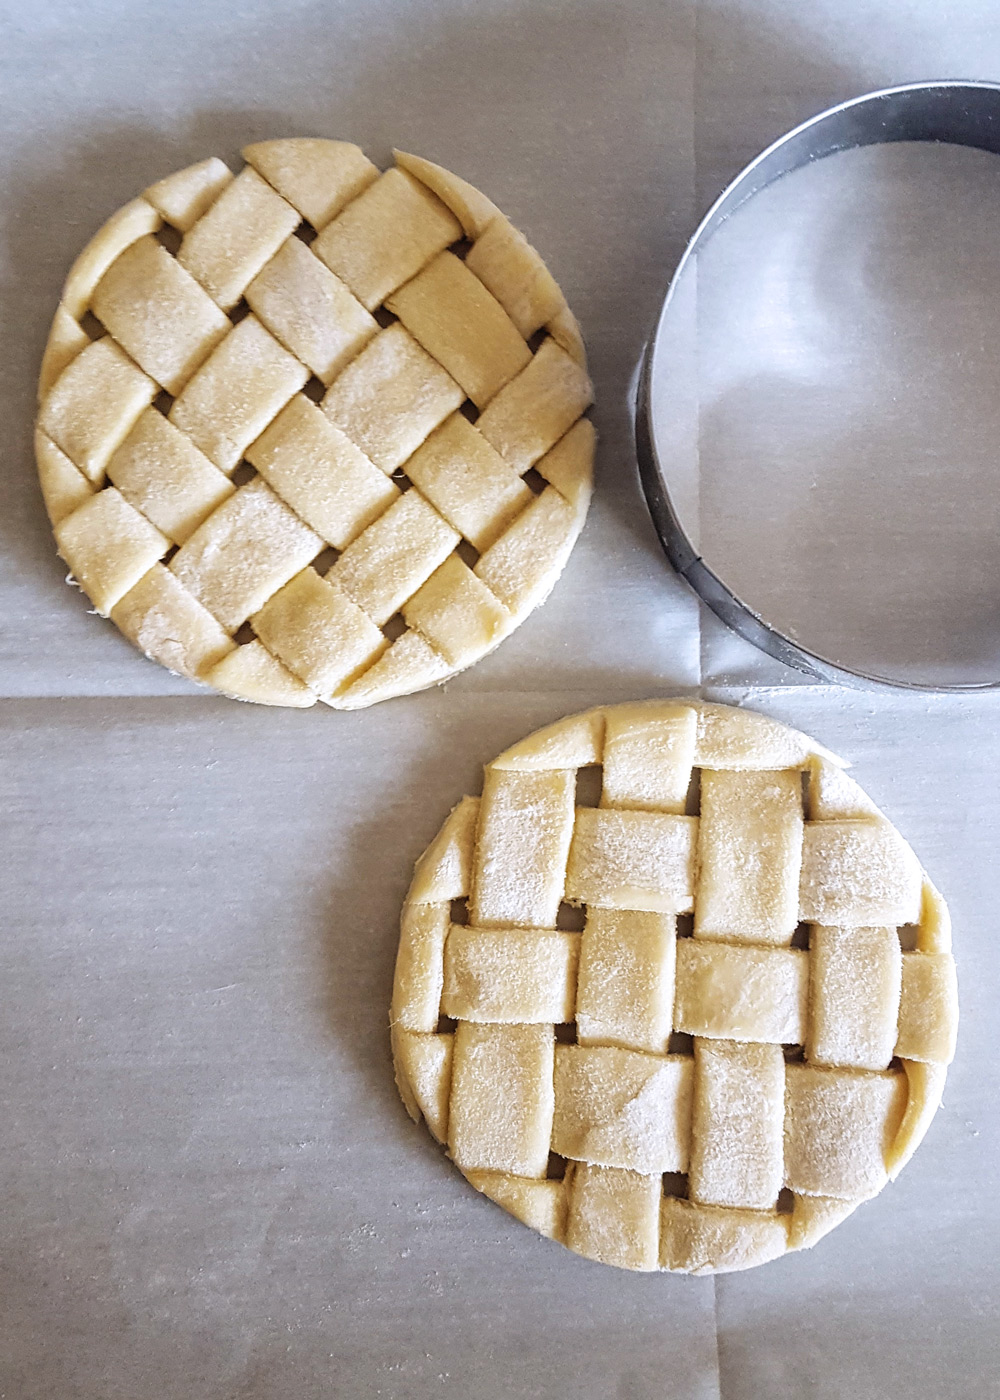 Woven puff pastry strips cut into circles with a cookie cutter. | FeastInThyme.com